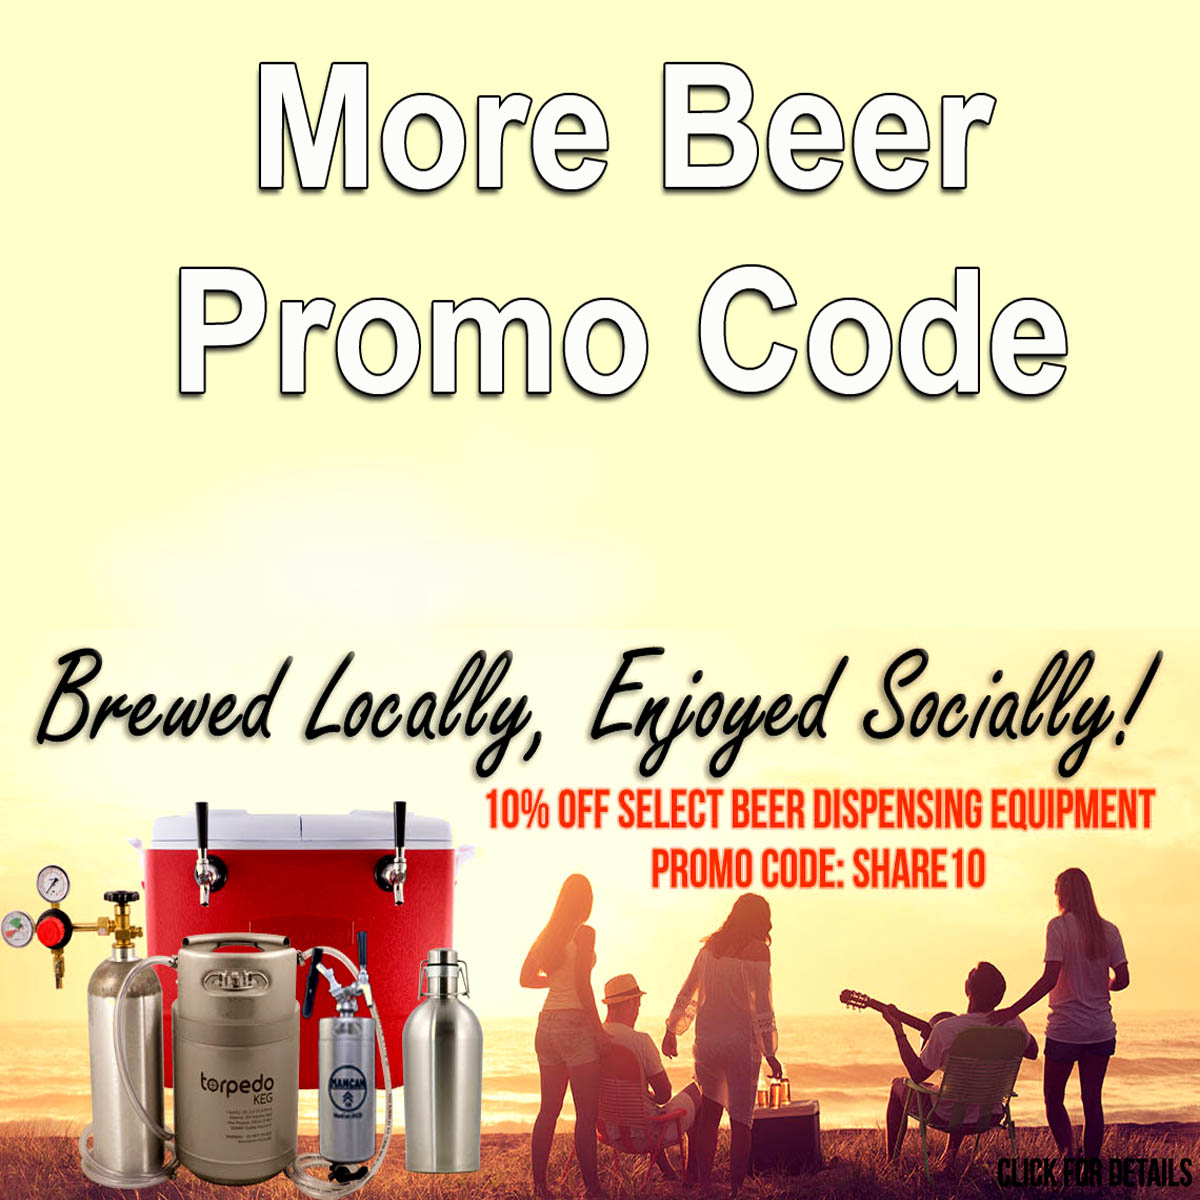 Save 10% On Over 50 Items at More Beer Coupon Code